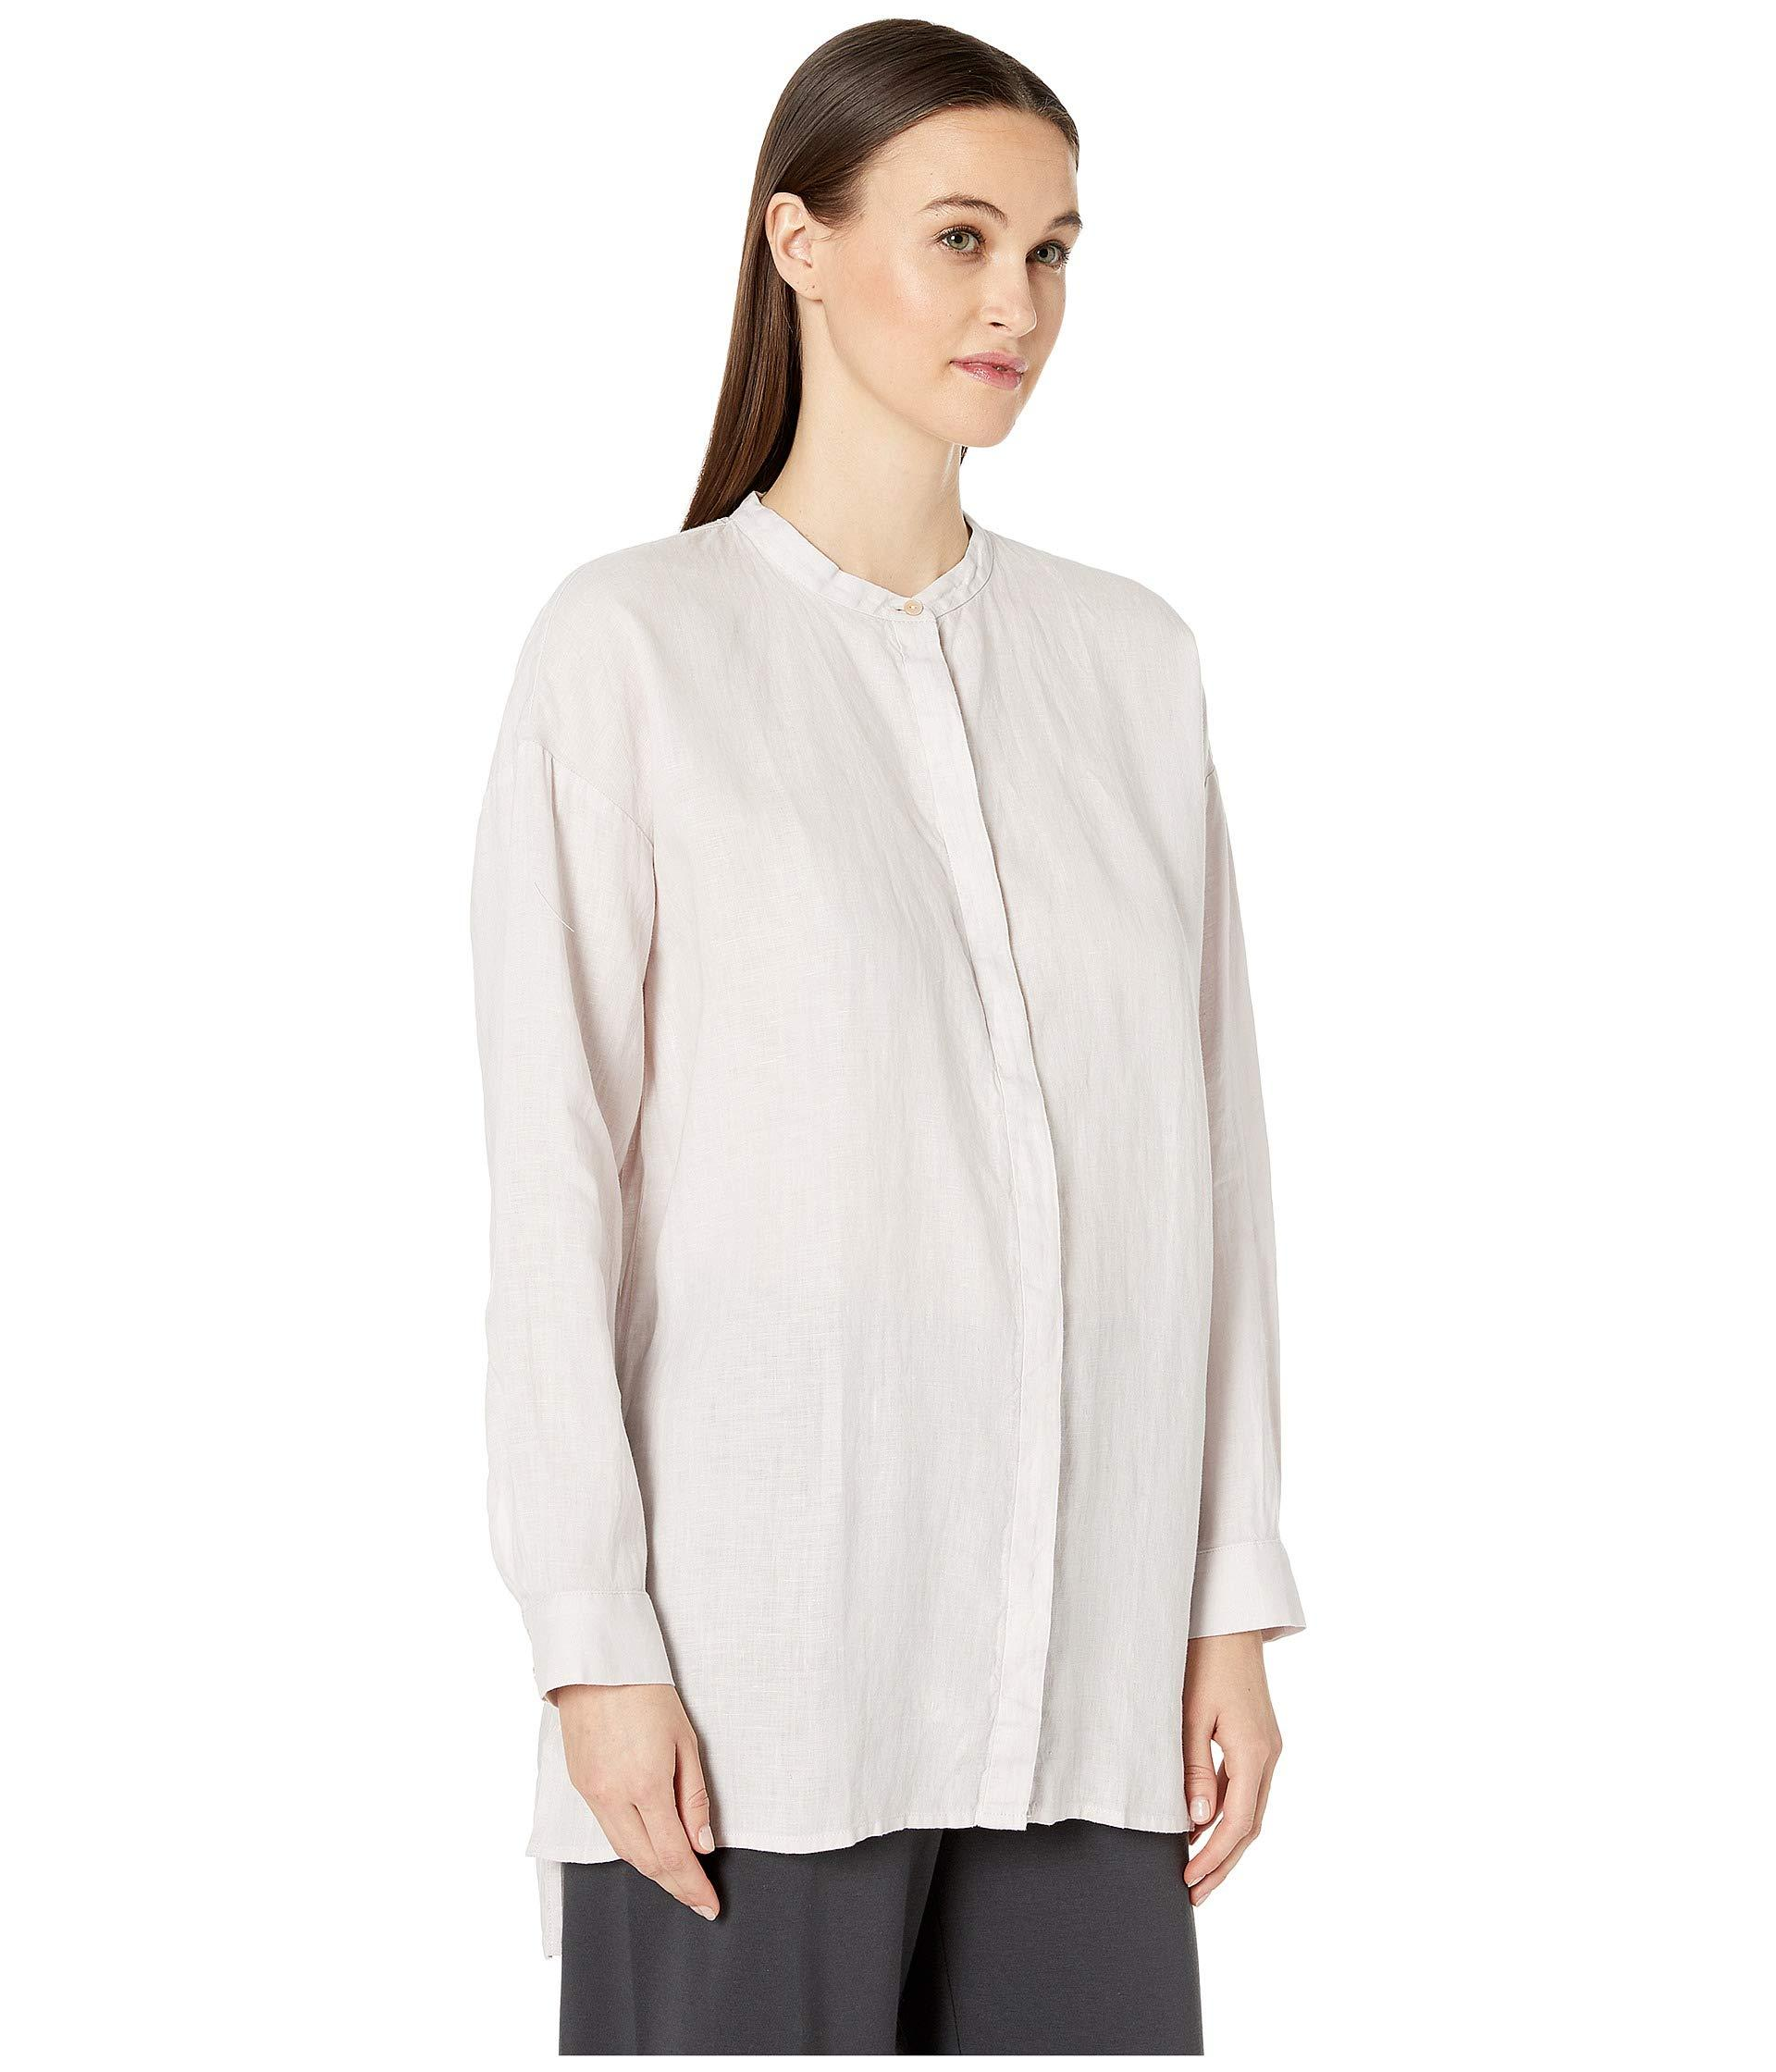 328738e3 Eileen Fisher Organic Handkerchief Linen Mandarin Collar Boxy Shirt  (ceramic) Women's Clothing in White - Lyst